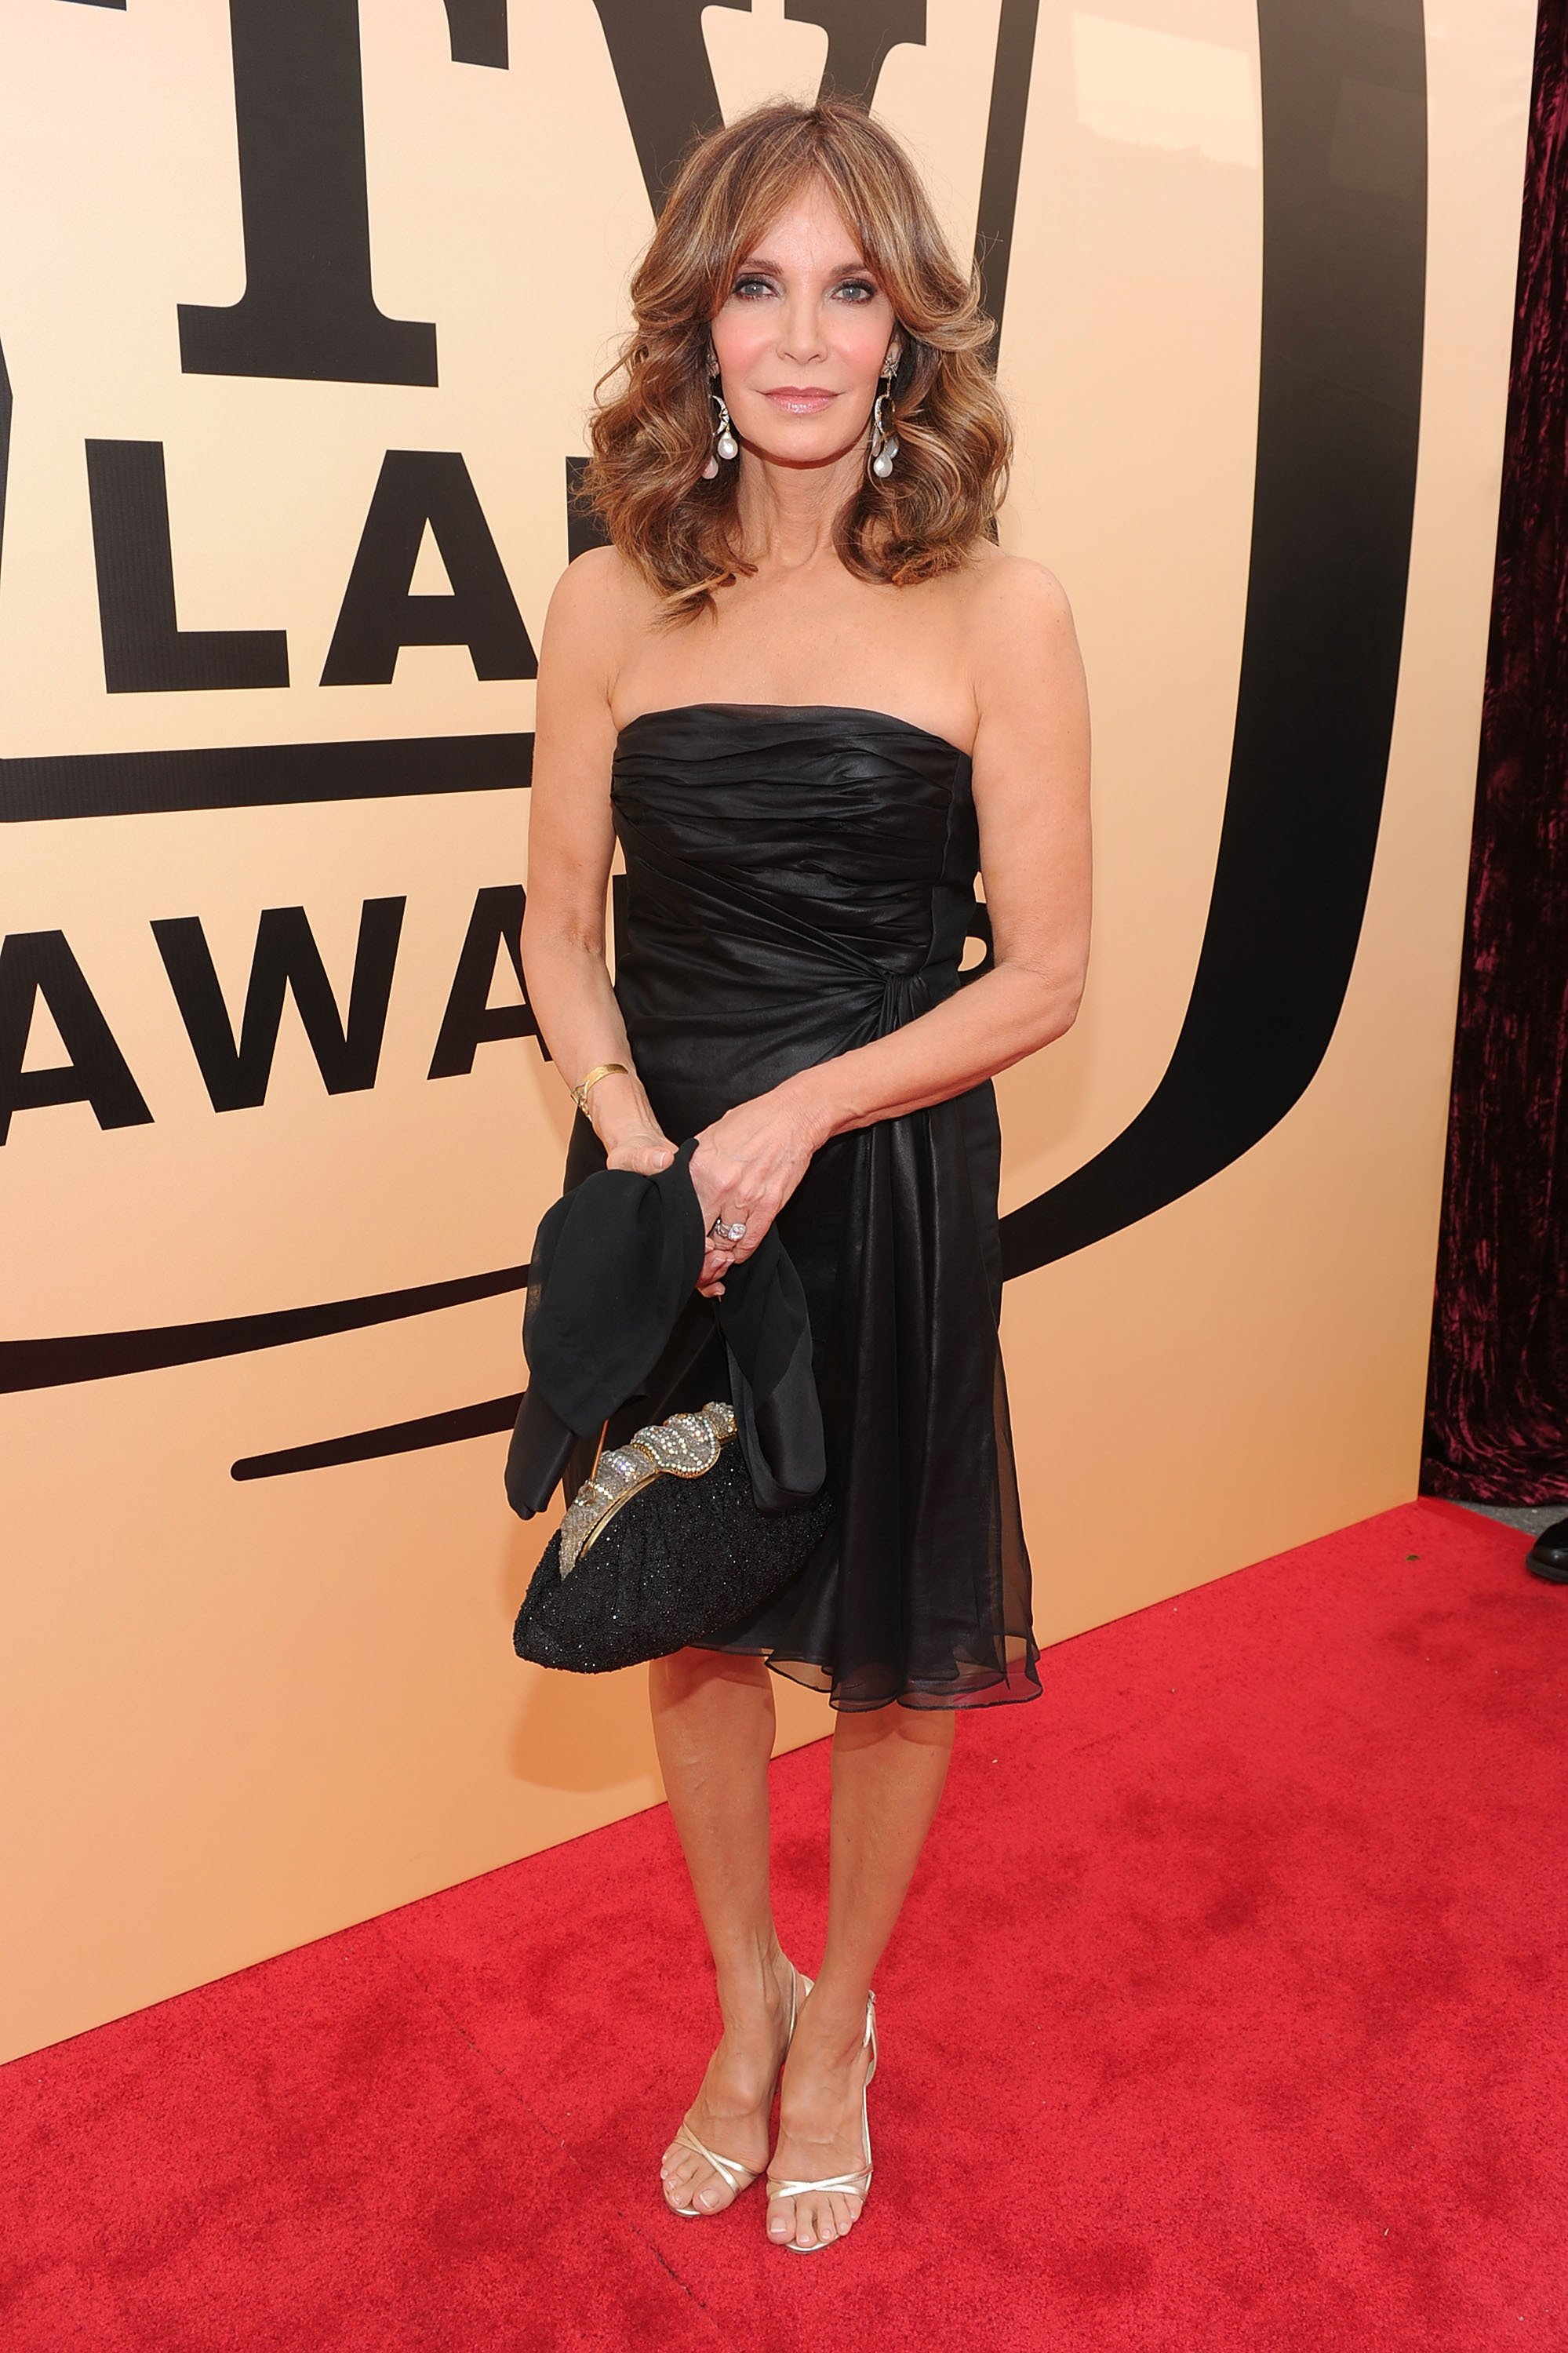 Jaclyn Smith arrives at the 8th Annual TV Land Awards at Sony Studios on April 17, 2010 in Culver City, California. | Source: Getty Images